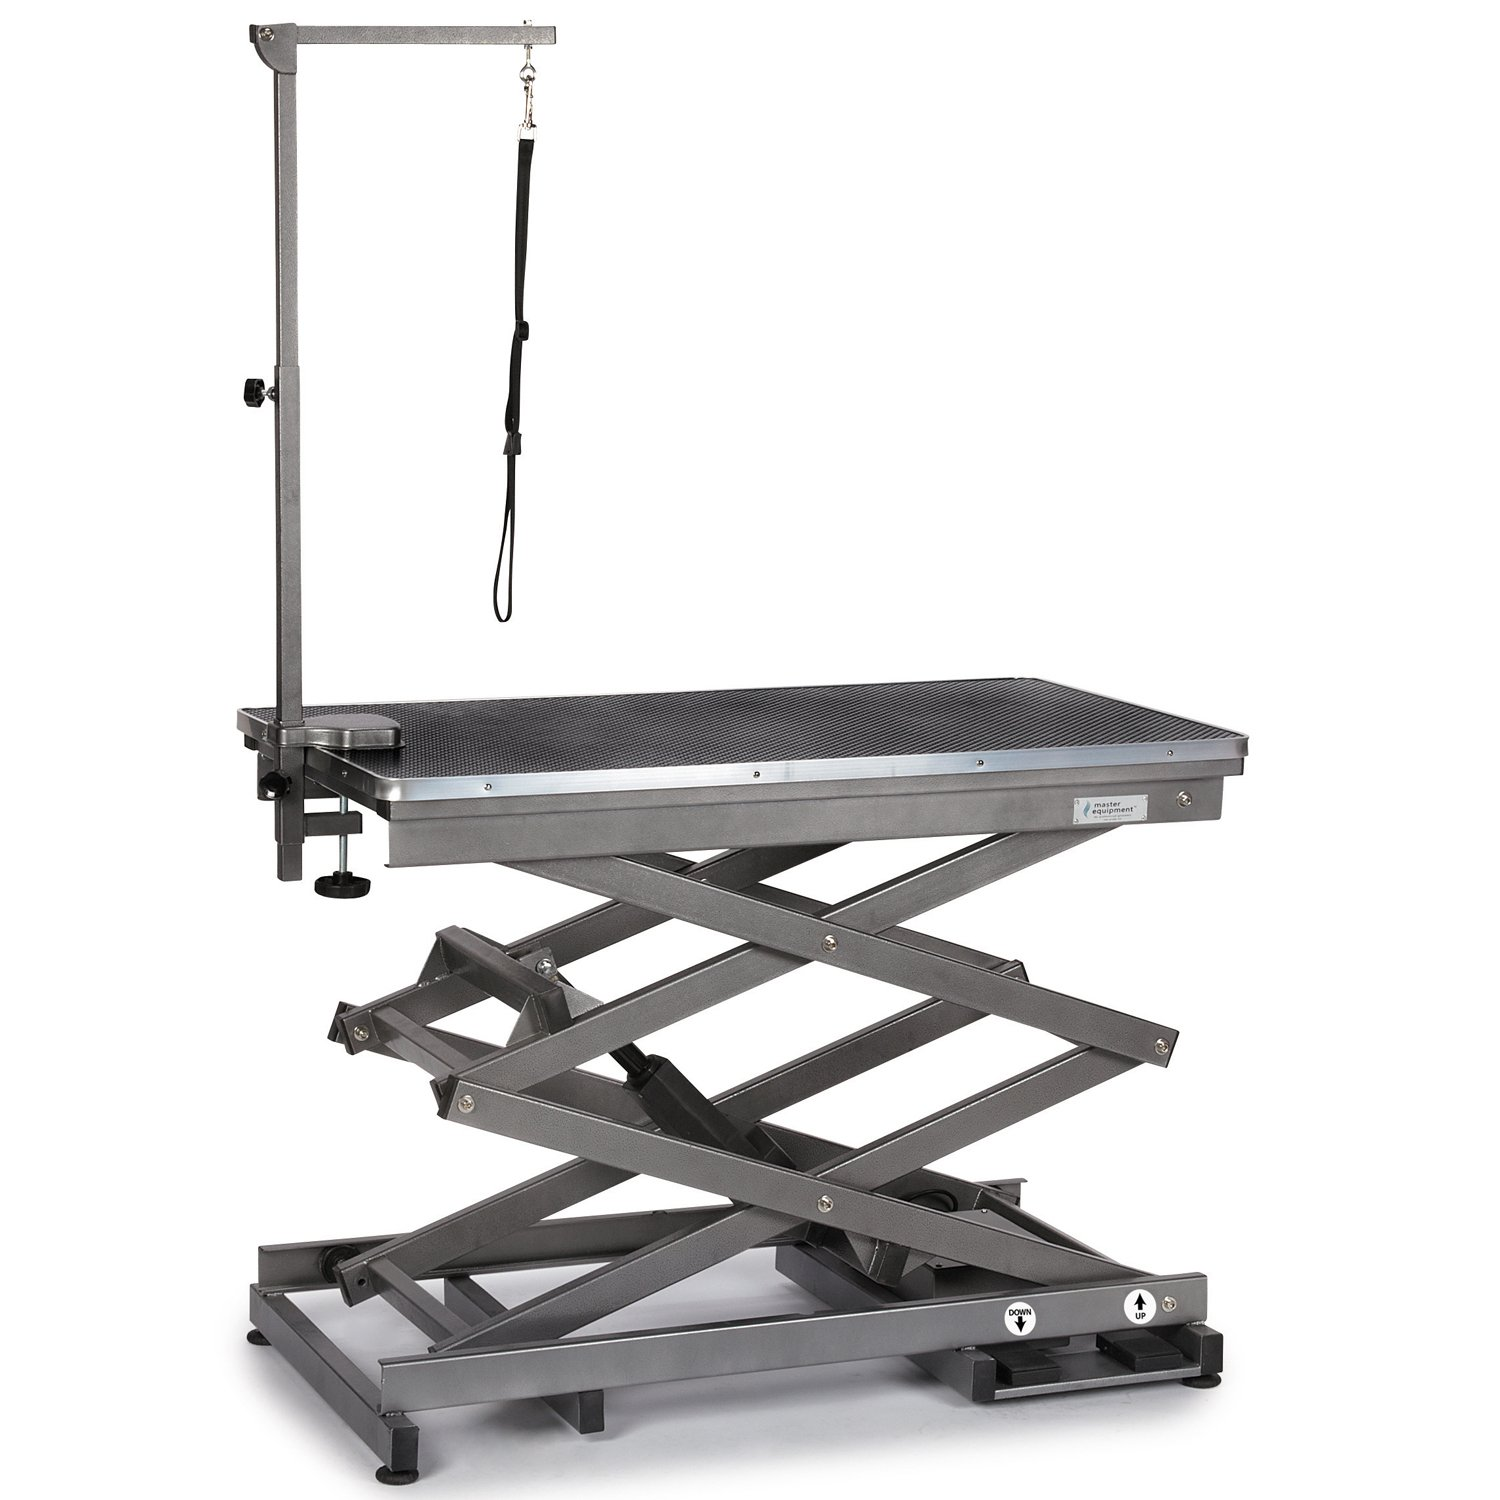 Master Equipment X-Tend Electric Grooming Table, Black